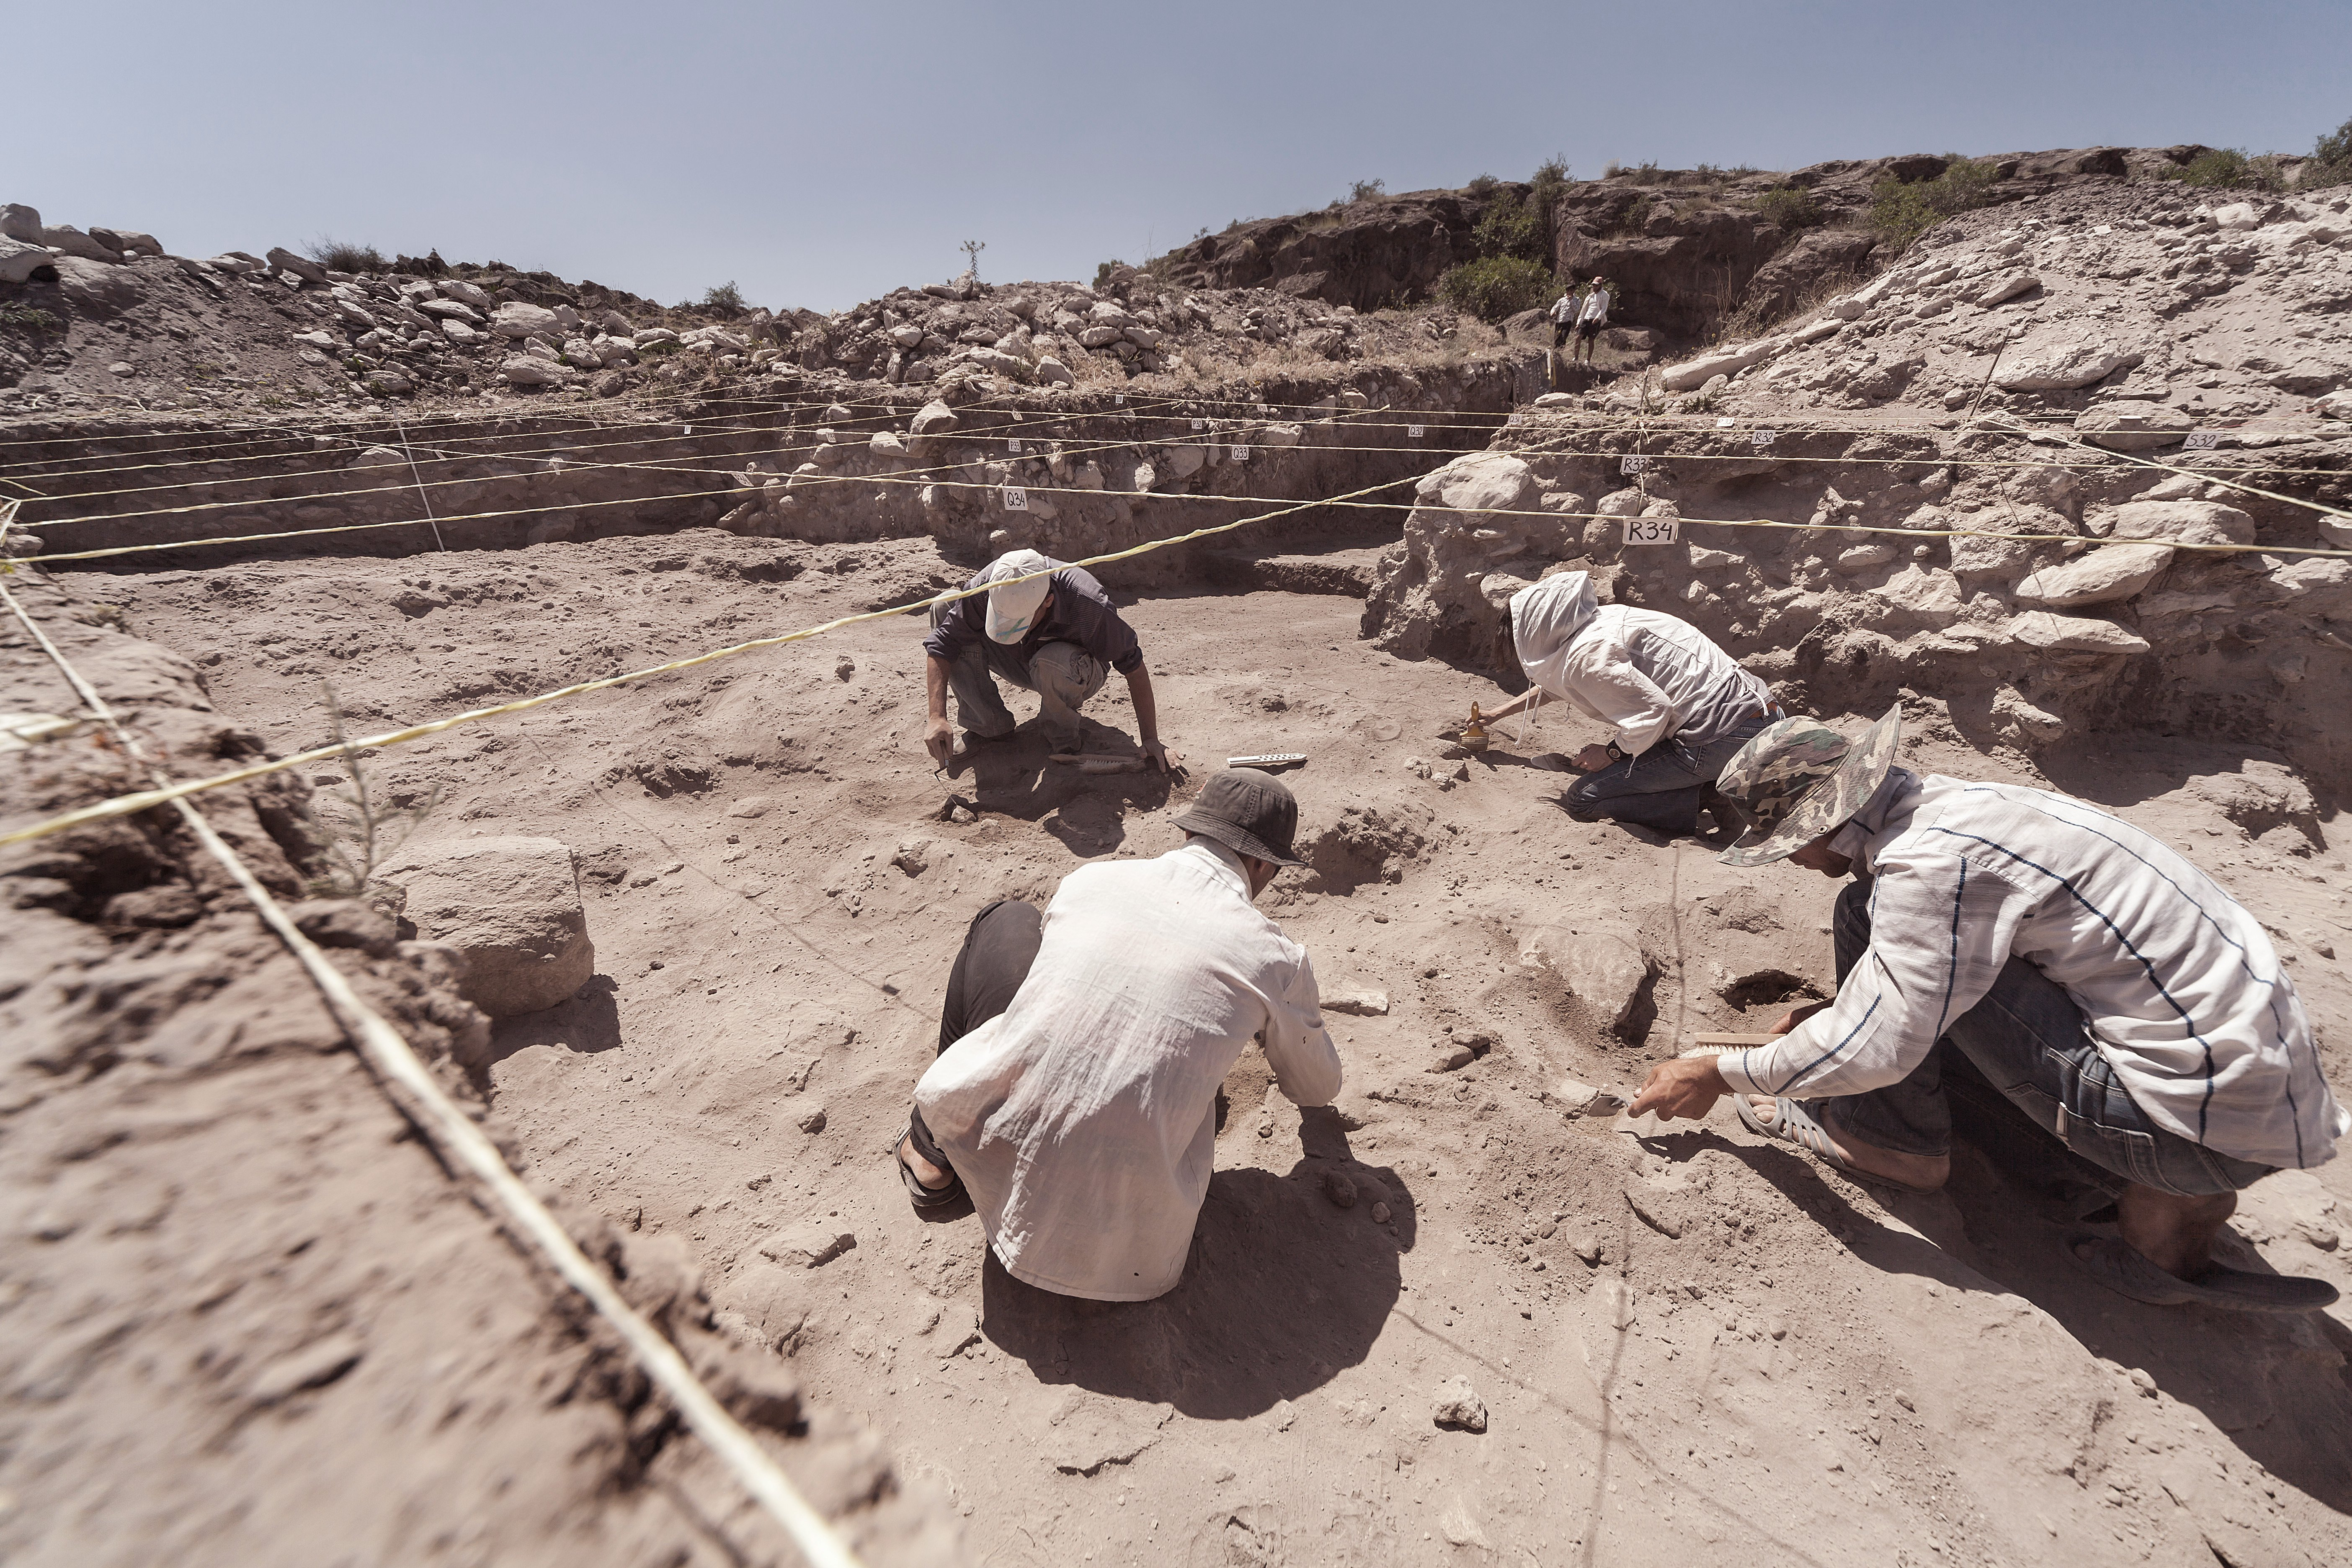 Origin of the Evolution of Life Unearthed